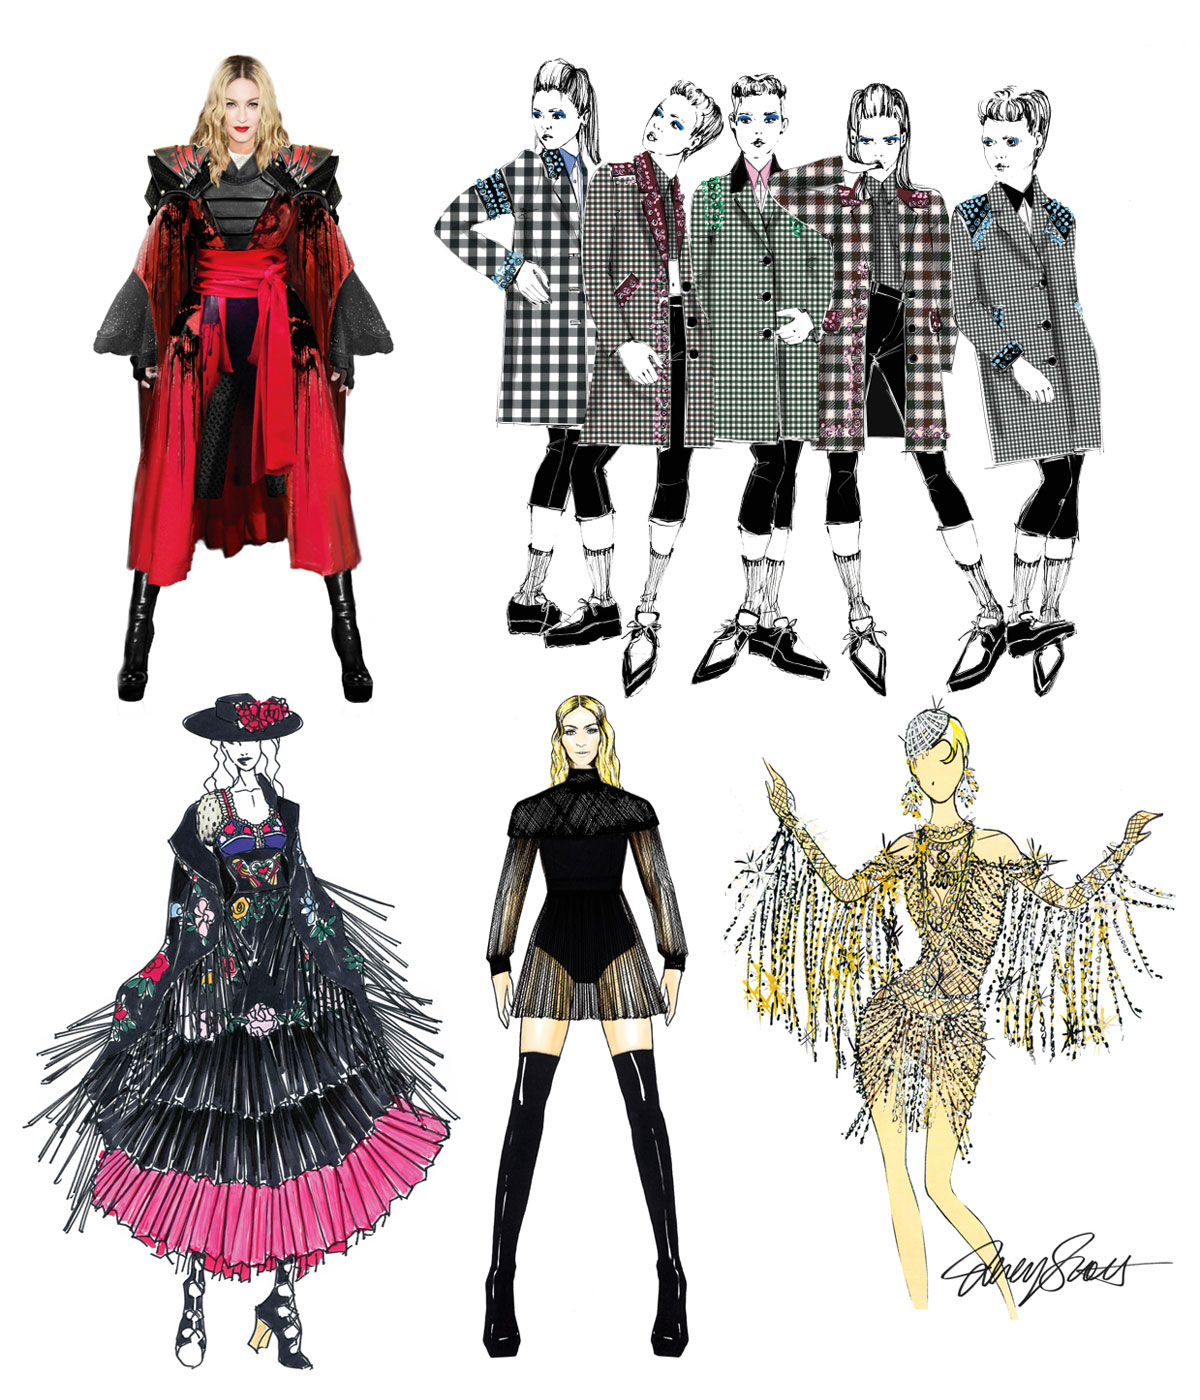 Madonna's 'Rebel Heart' Tour Designer Costume Sketches